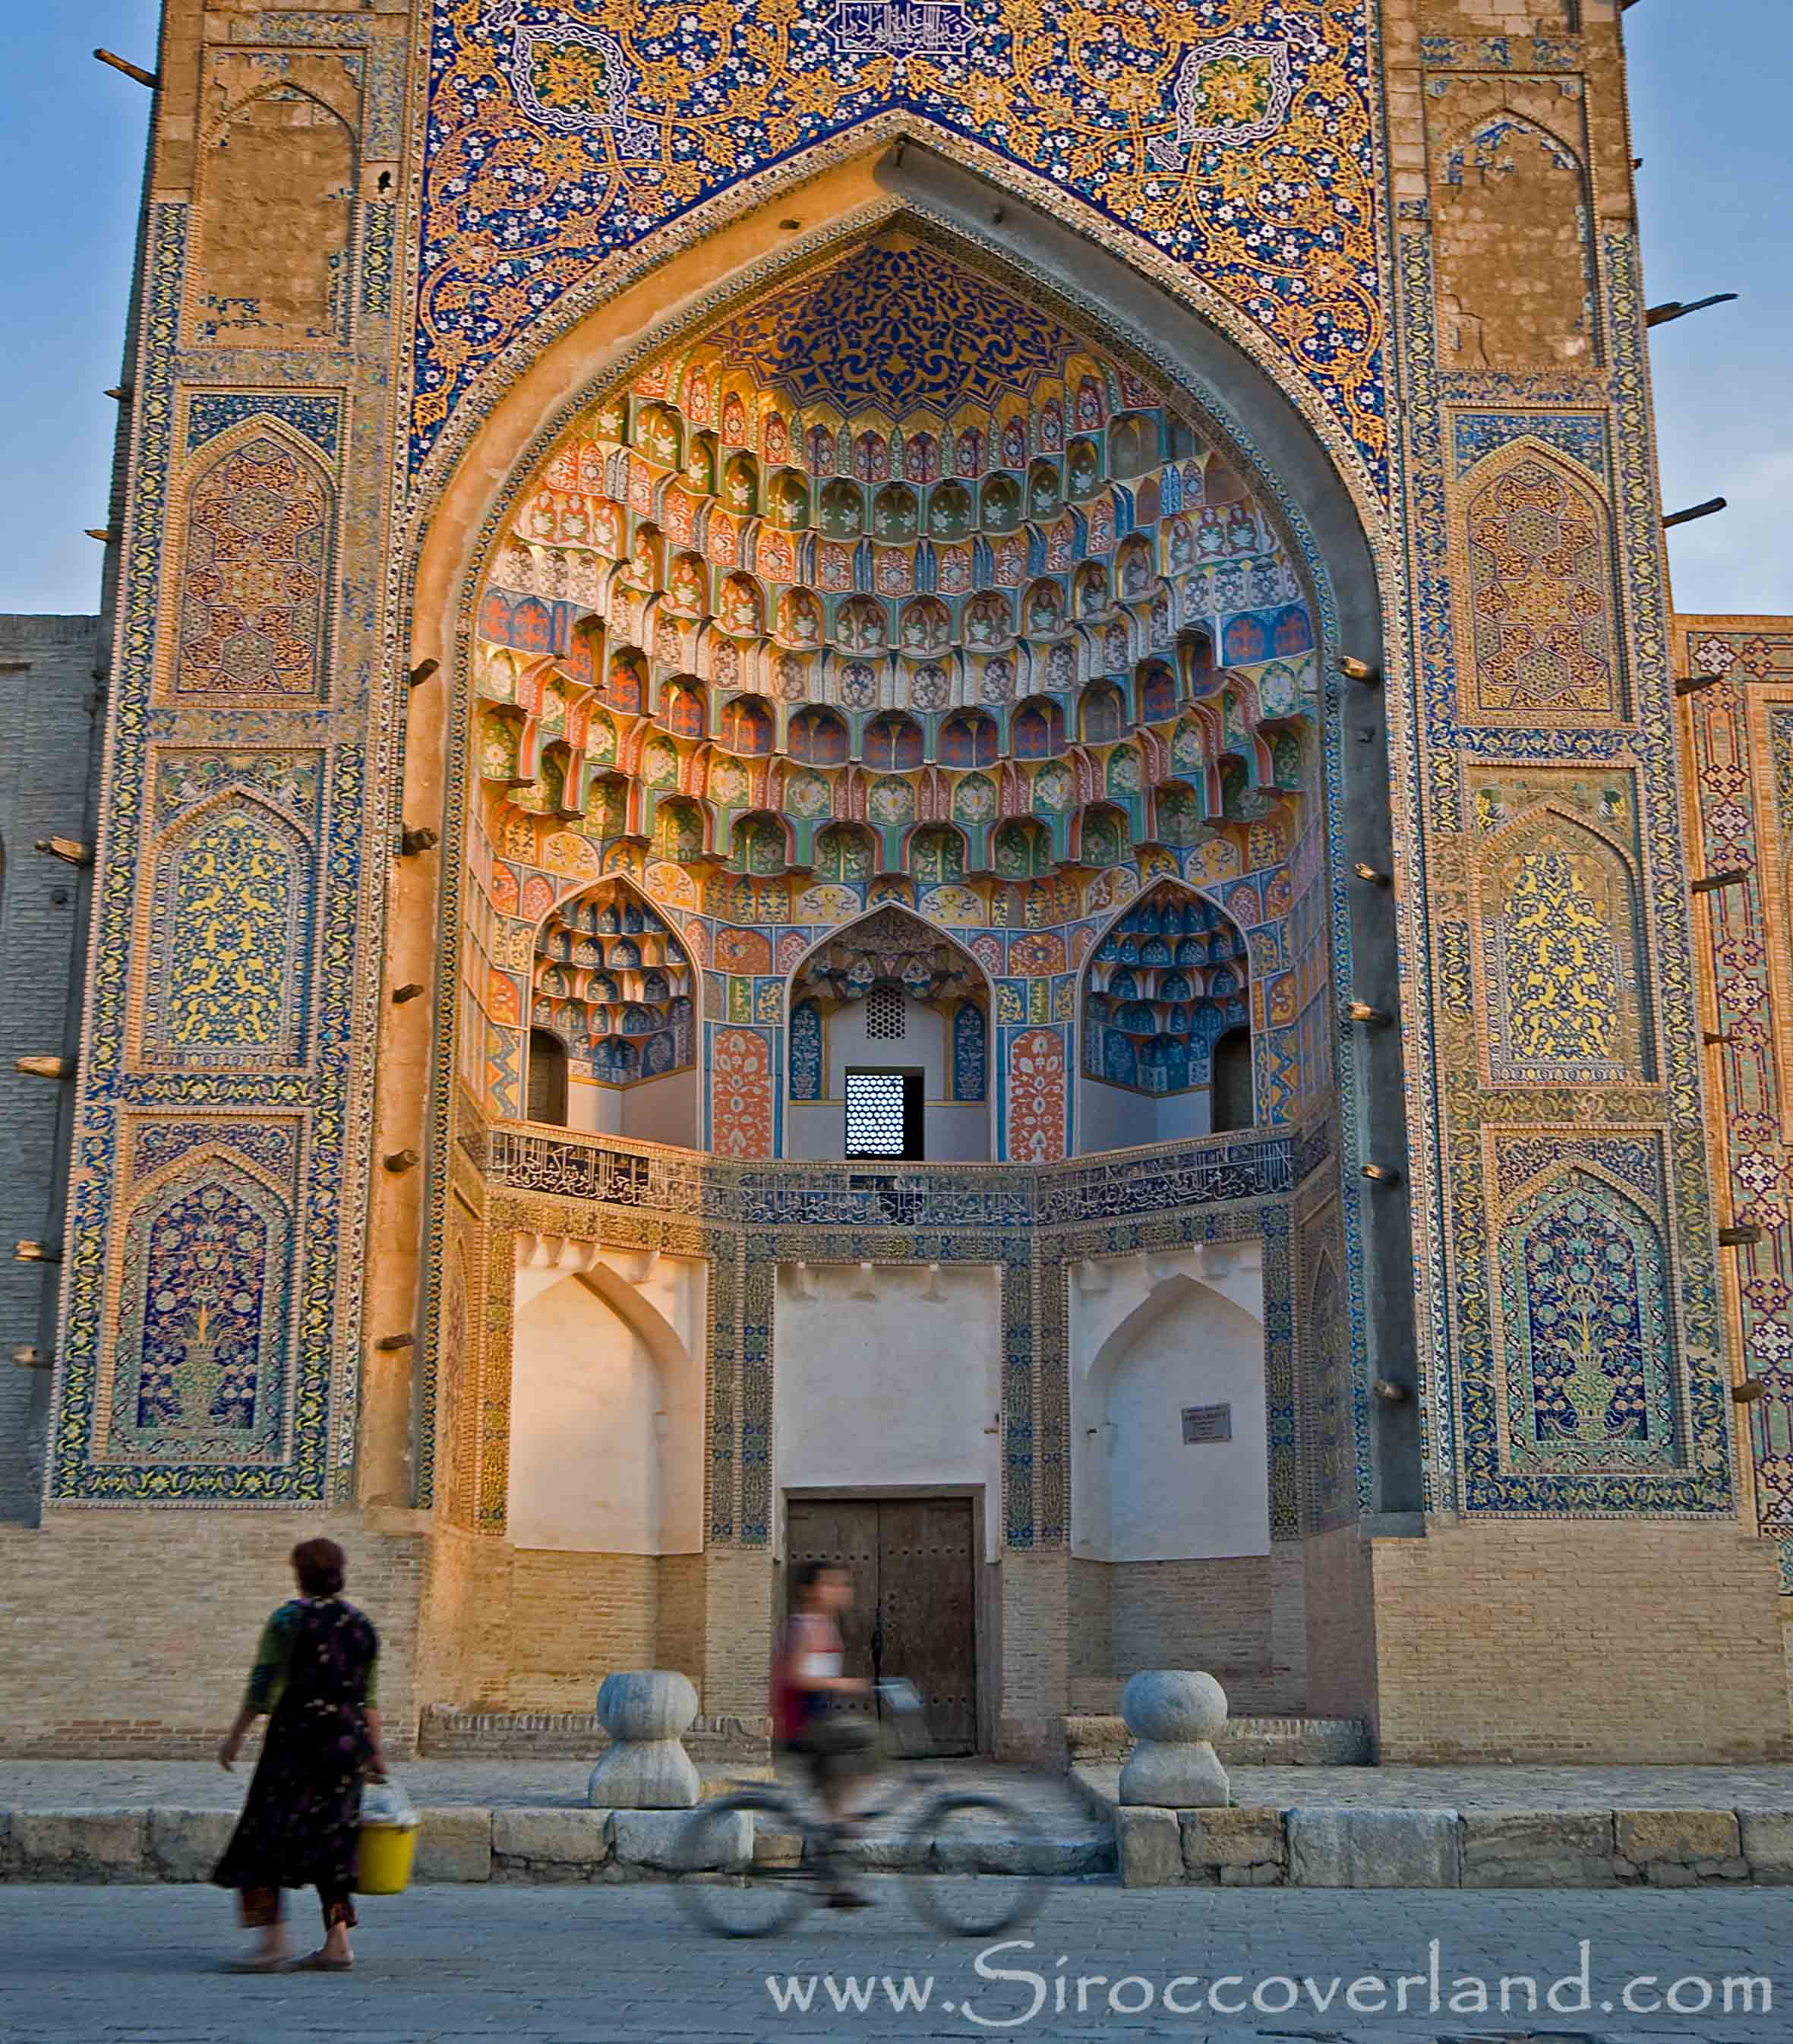 Uzbekistan The Silk Road Cities And Near Death In Bukhara further 5021 moreover Why Might Lower Settings Of A Dashboard Fan Not Work If The Highest Does additionally MMnB2 A Challenger From The Future Dimensions 397303874 together with Pajero 1989 Metro Manila. on 14 aircon